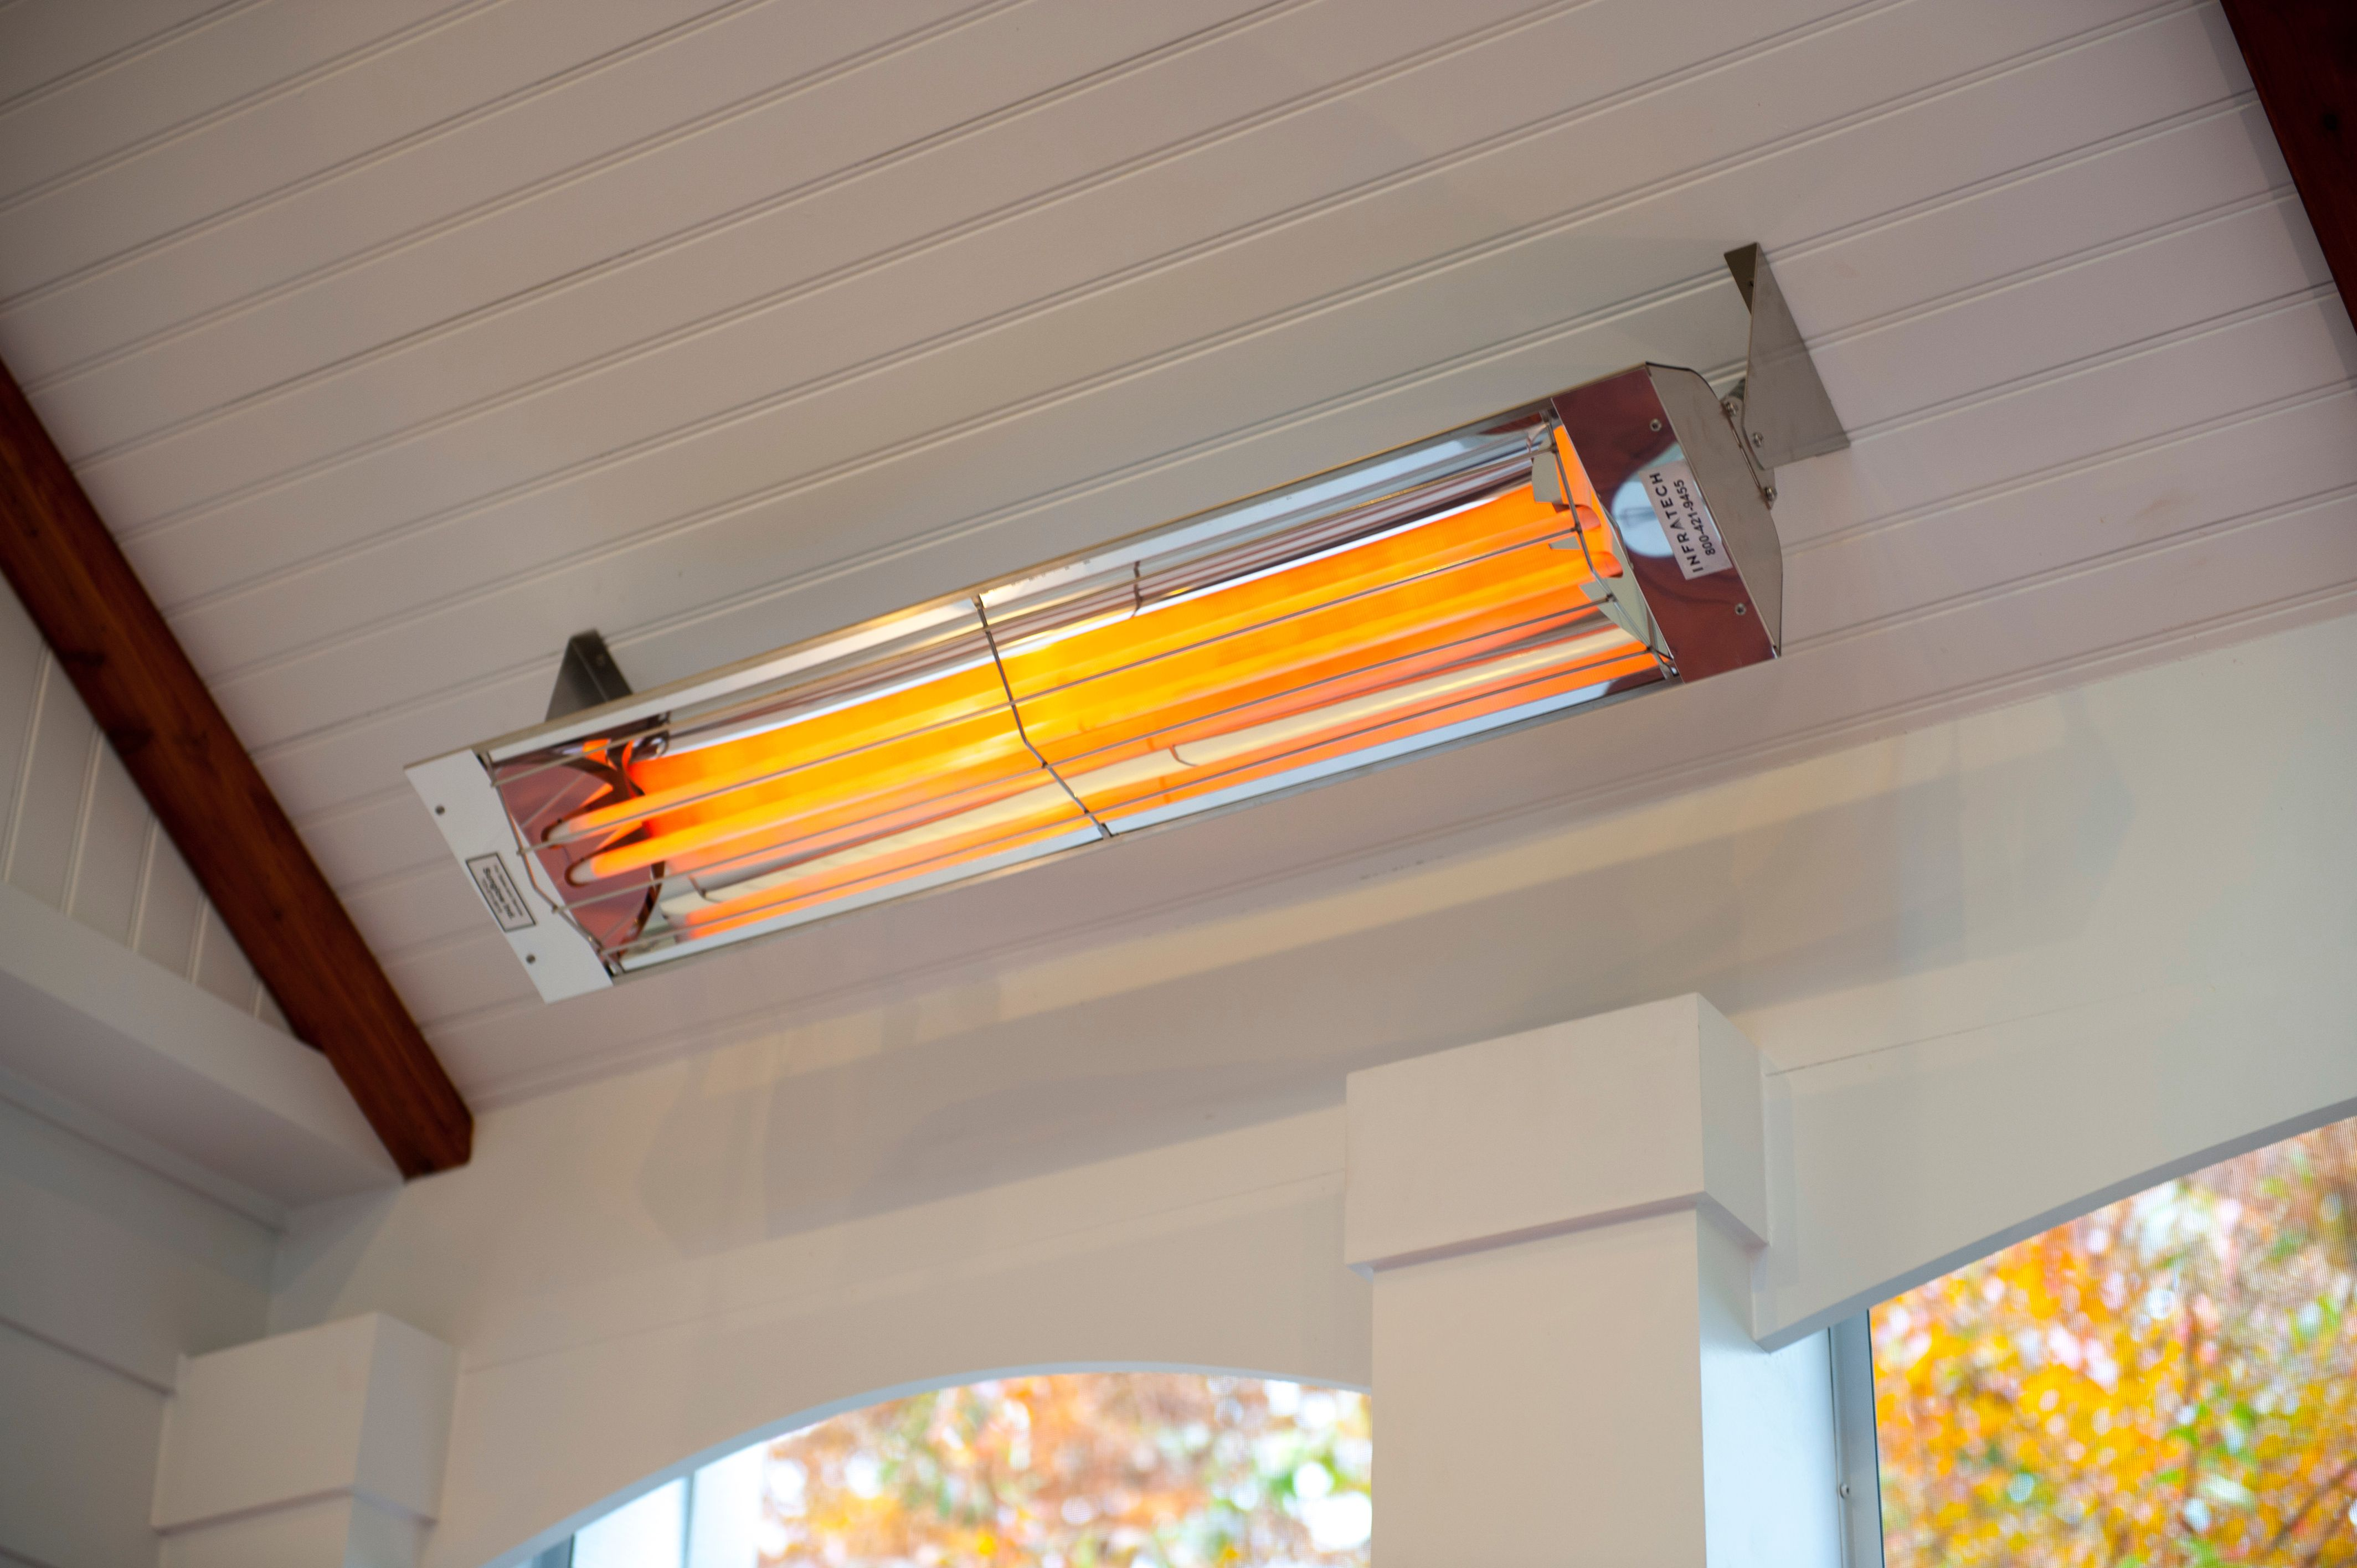 Adding An Infrared Heater To A Screened In Porch Is Great Way Make Porches Accessible Year Round Maryland Virginia And D C